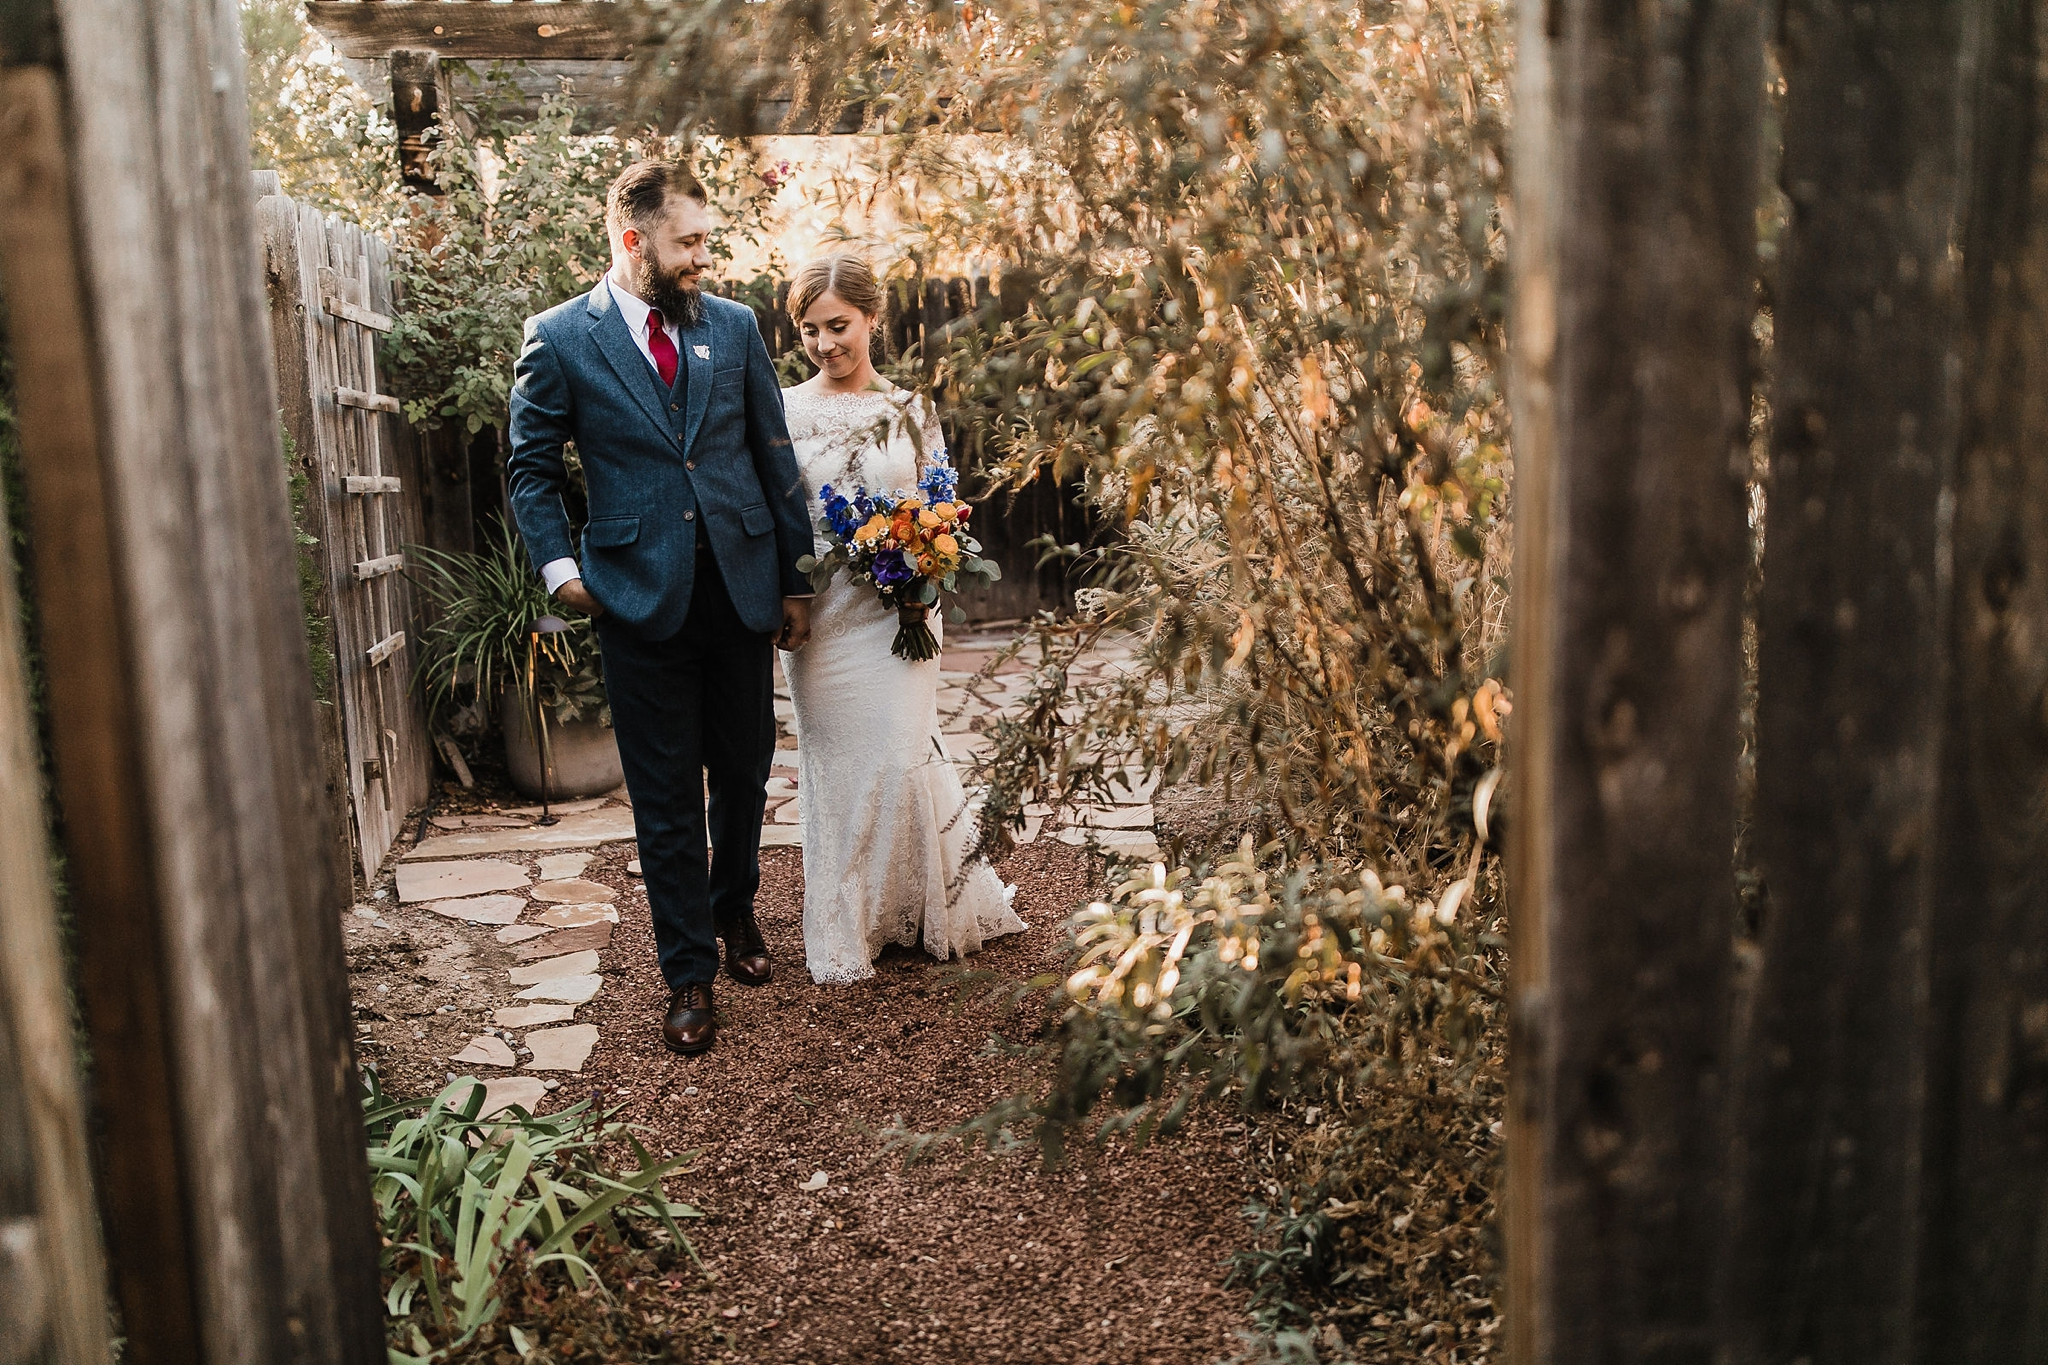 Alicia+lucia+photography+-+albuquerque+wedding+photographer+-+santa+fe+wedding+photography+-+new+mexico+wedding+photographer+-+albuquerque+wedding+-+sarabande+bed+breakfast+-+bed+and+breakfast+wedding_0094.jpg